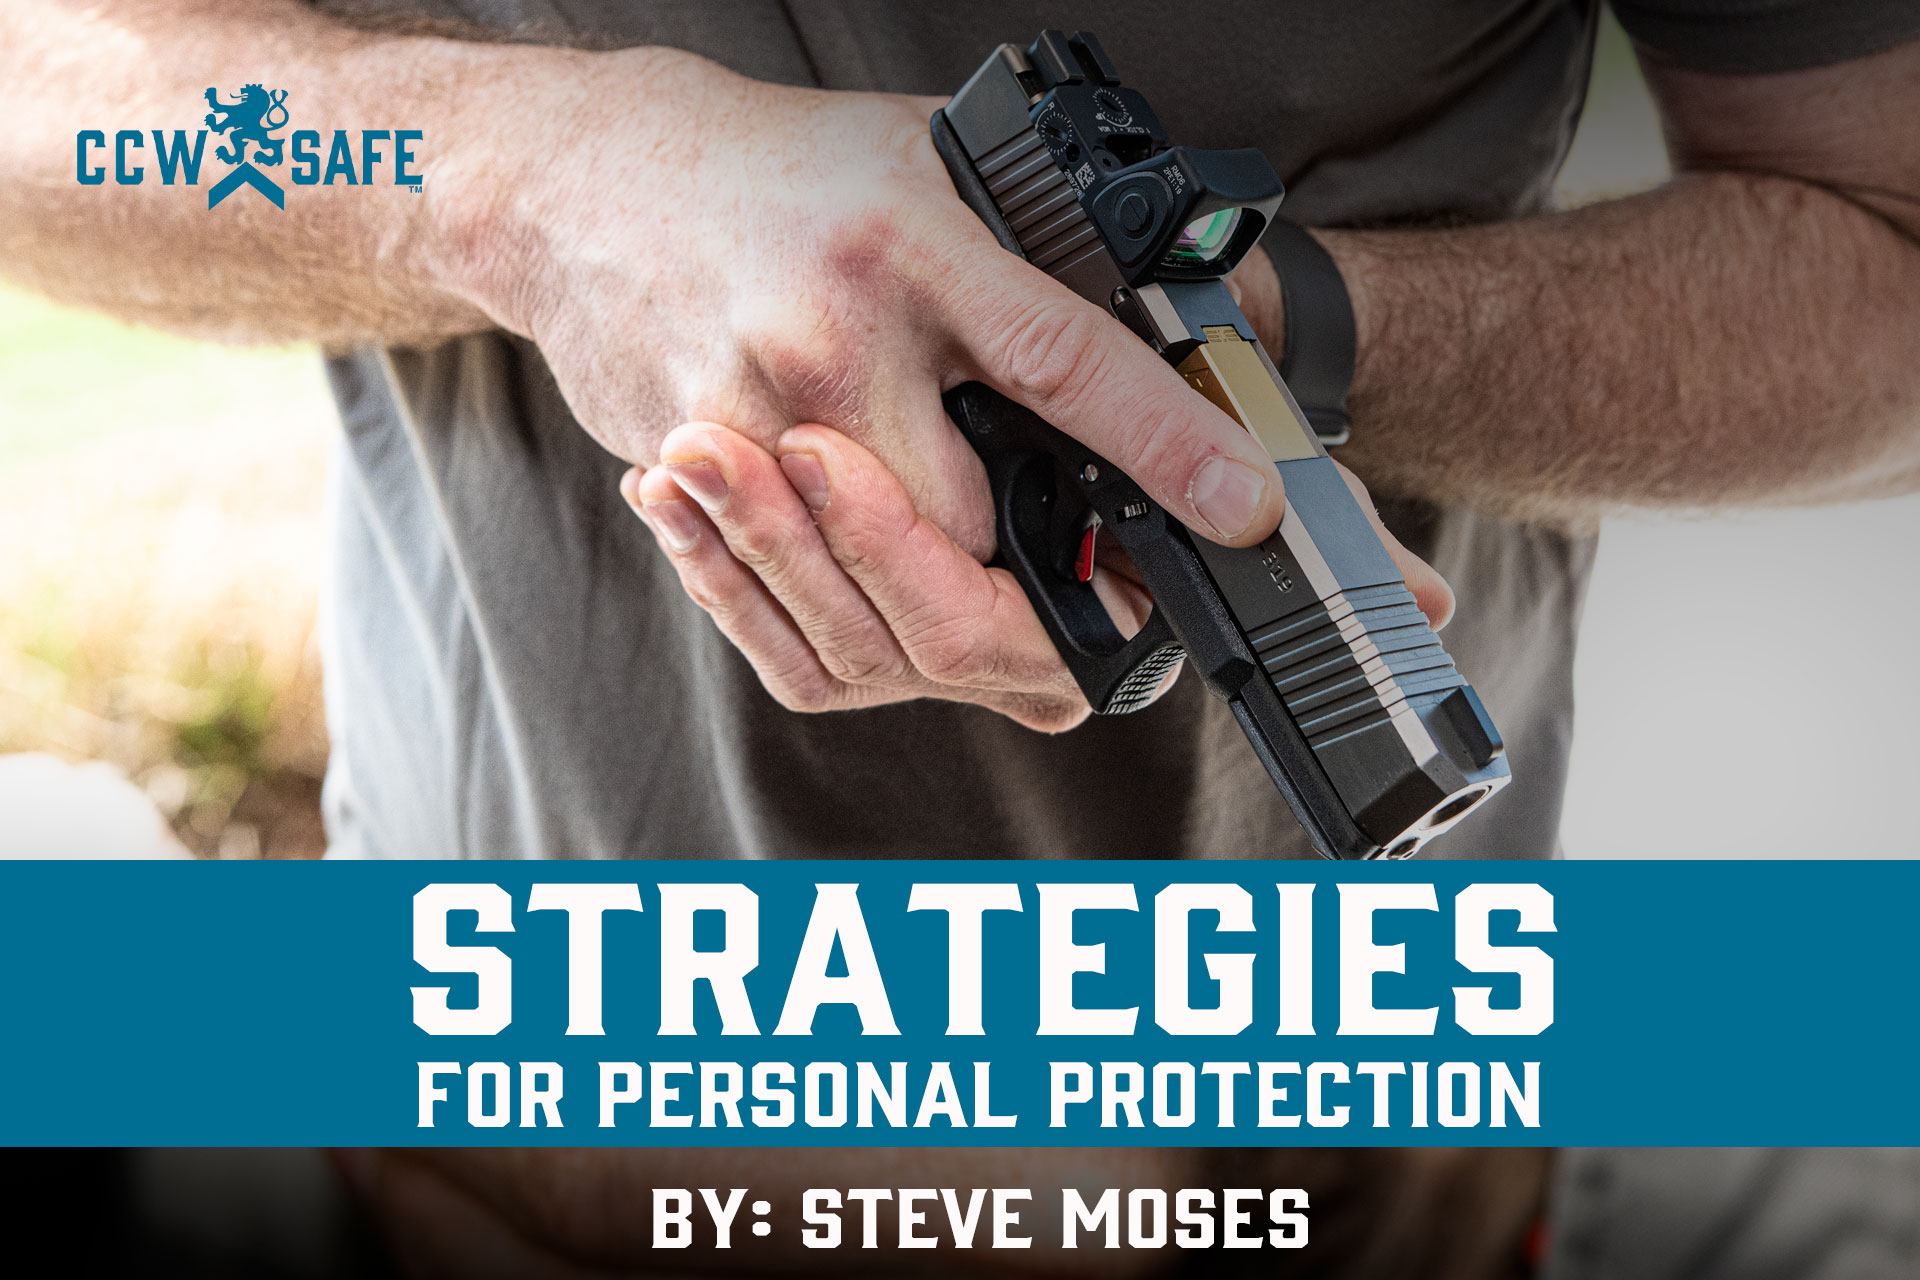 STRATEGIES FOR PERSONAL PROTECTION